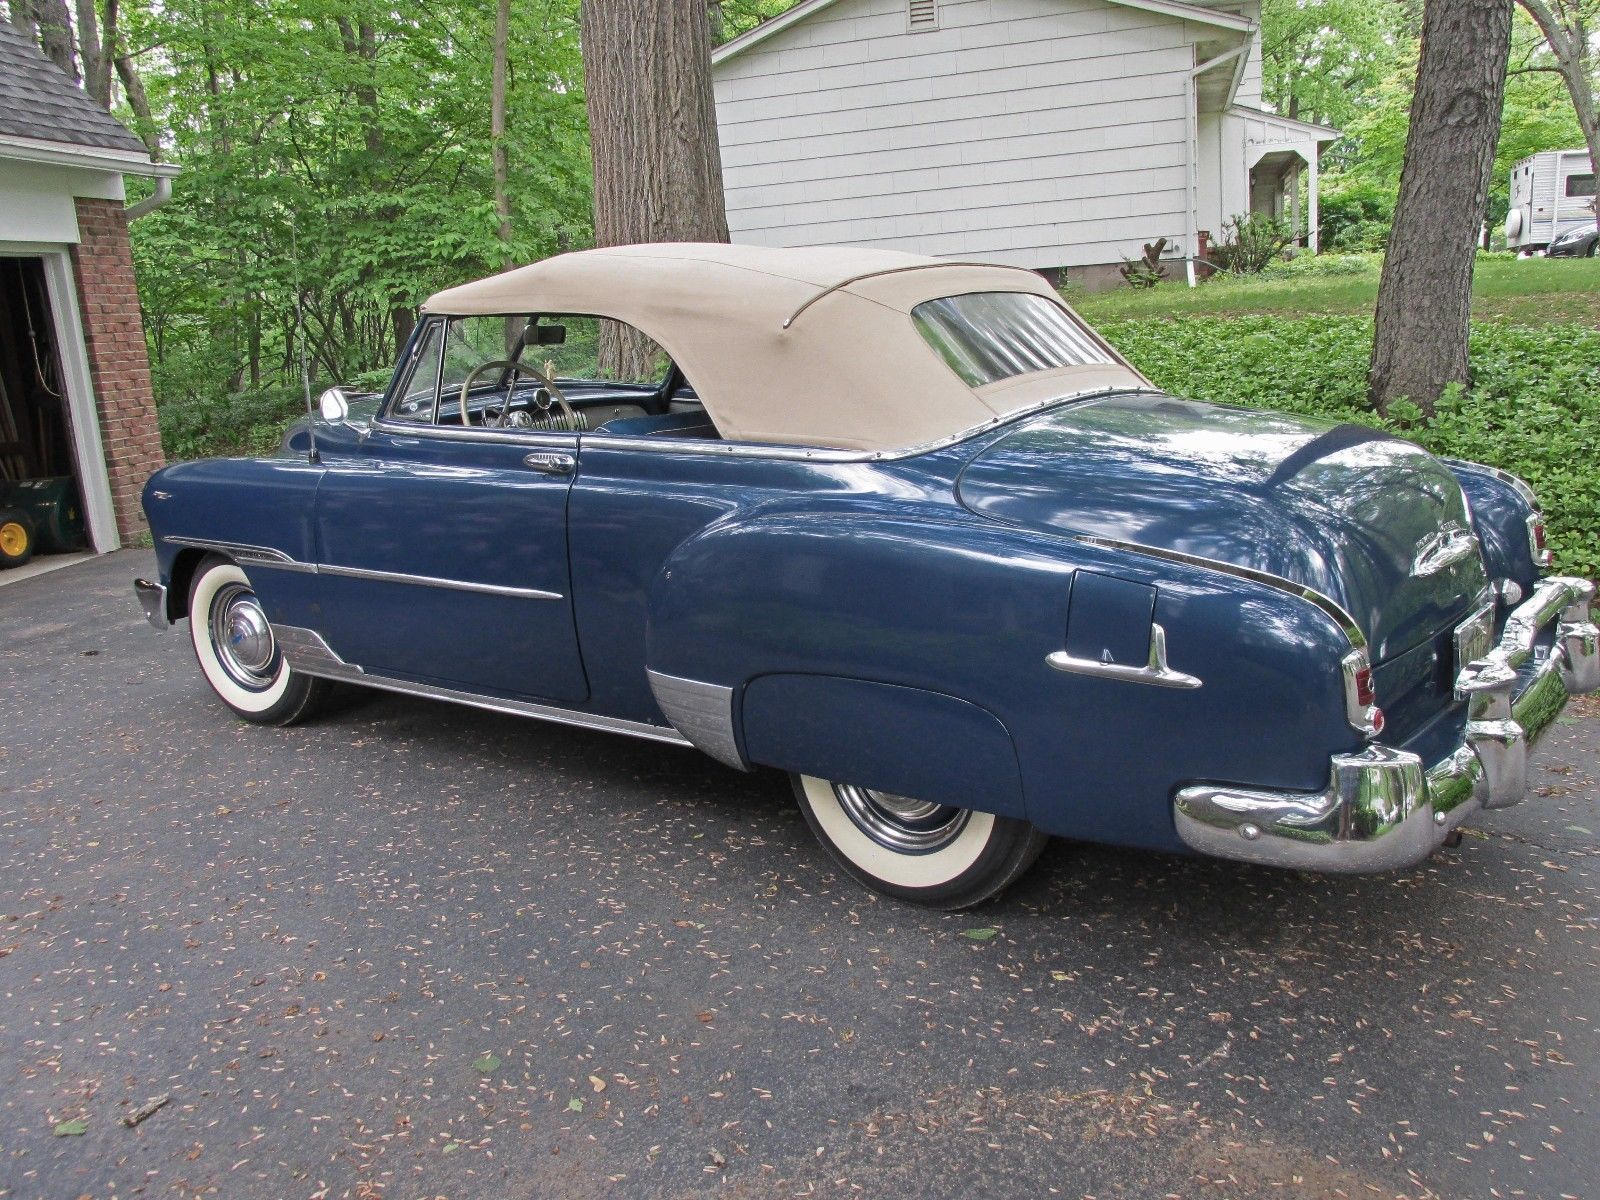 1951 Chevrolet Convertible Deluxe Chevrolet Chevy Classic Cars